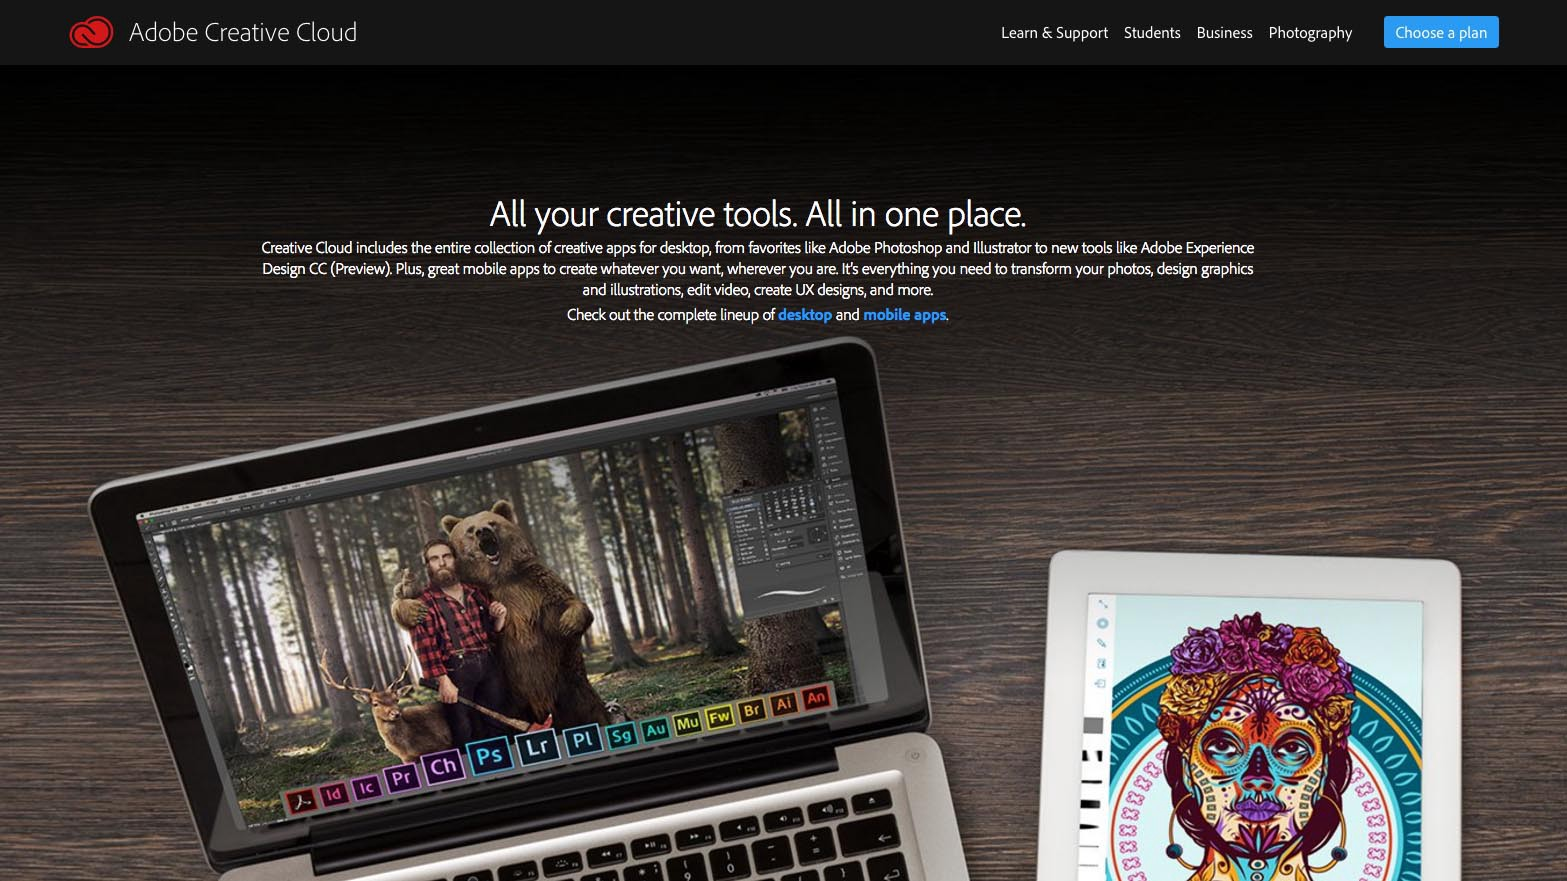 Image How To Brand Yourself A: Adobe Creative Cloud